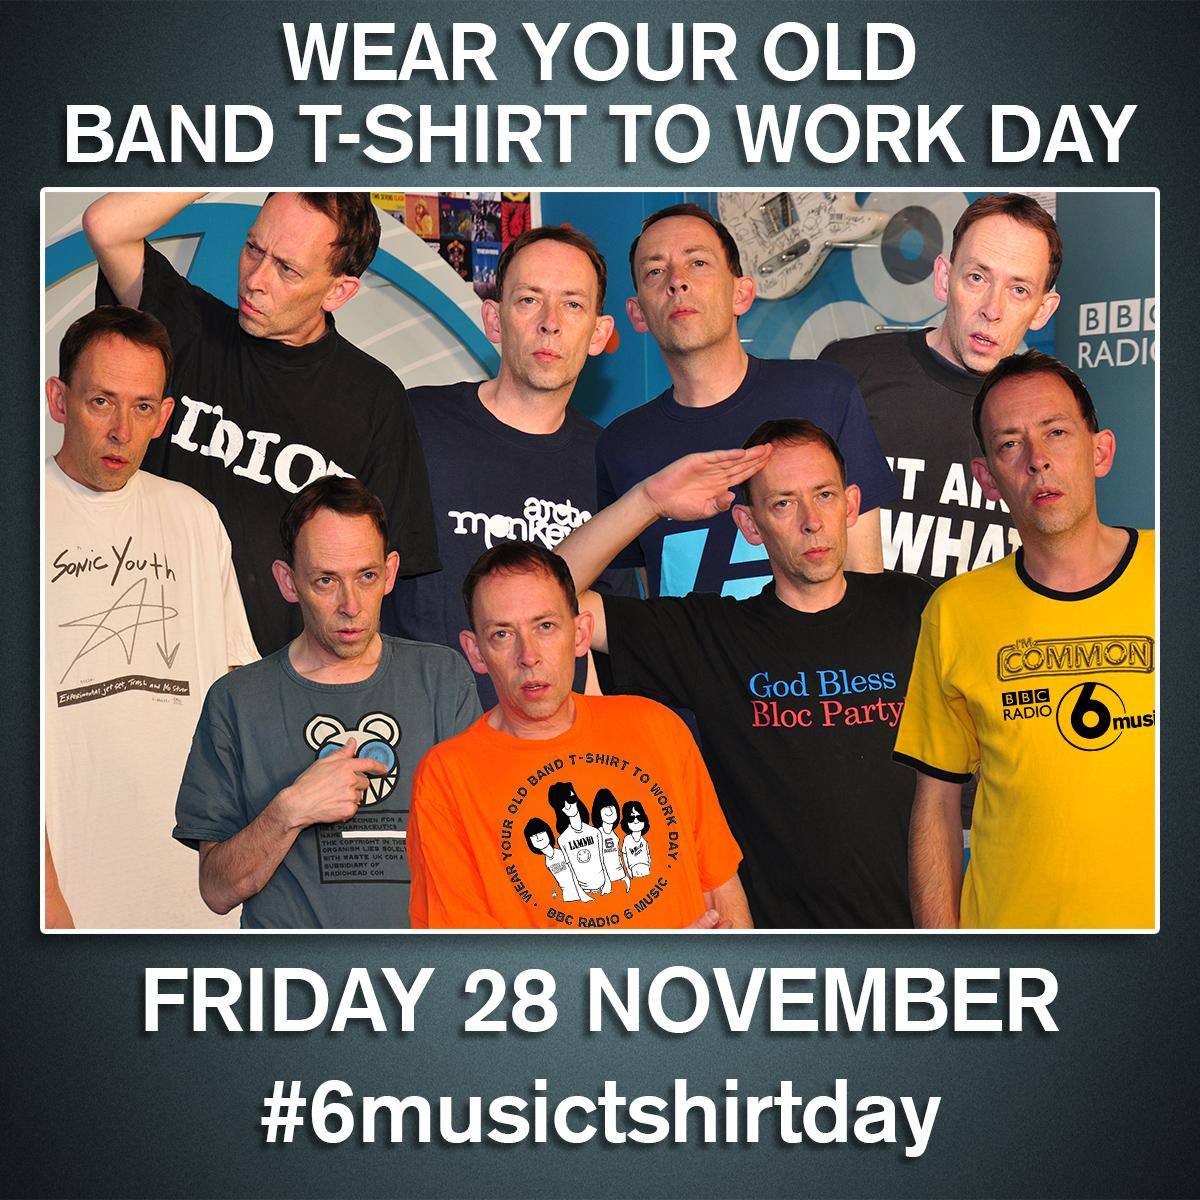 Get ready! It's coming! Wear Your Old Band T-Shirt To Work Day #6musictshirtday 28 November  http://t.co/ohbRvdxlpk http://t.co/Kvnqr6r8VV